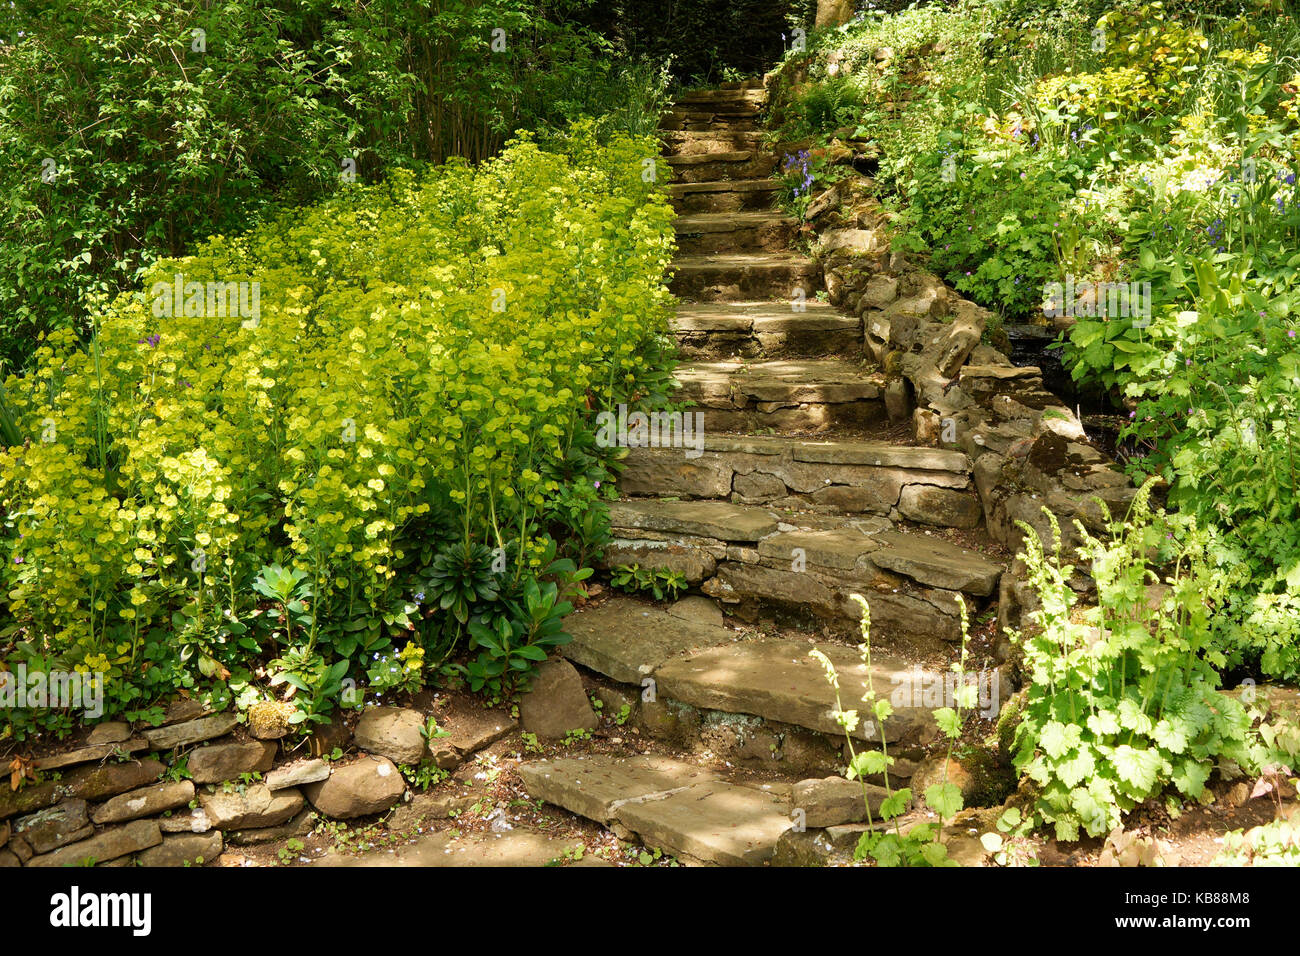 Natural Stone Stairs In A Garden